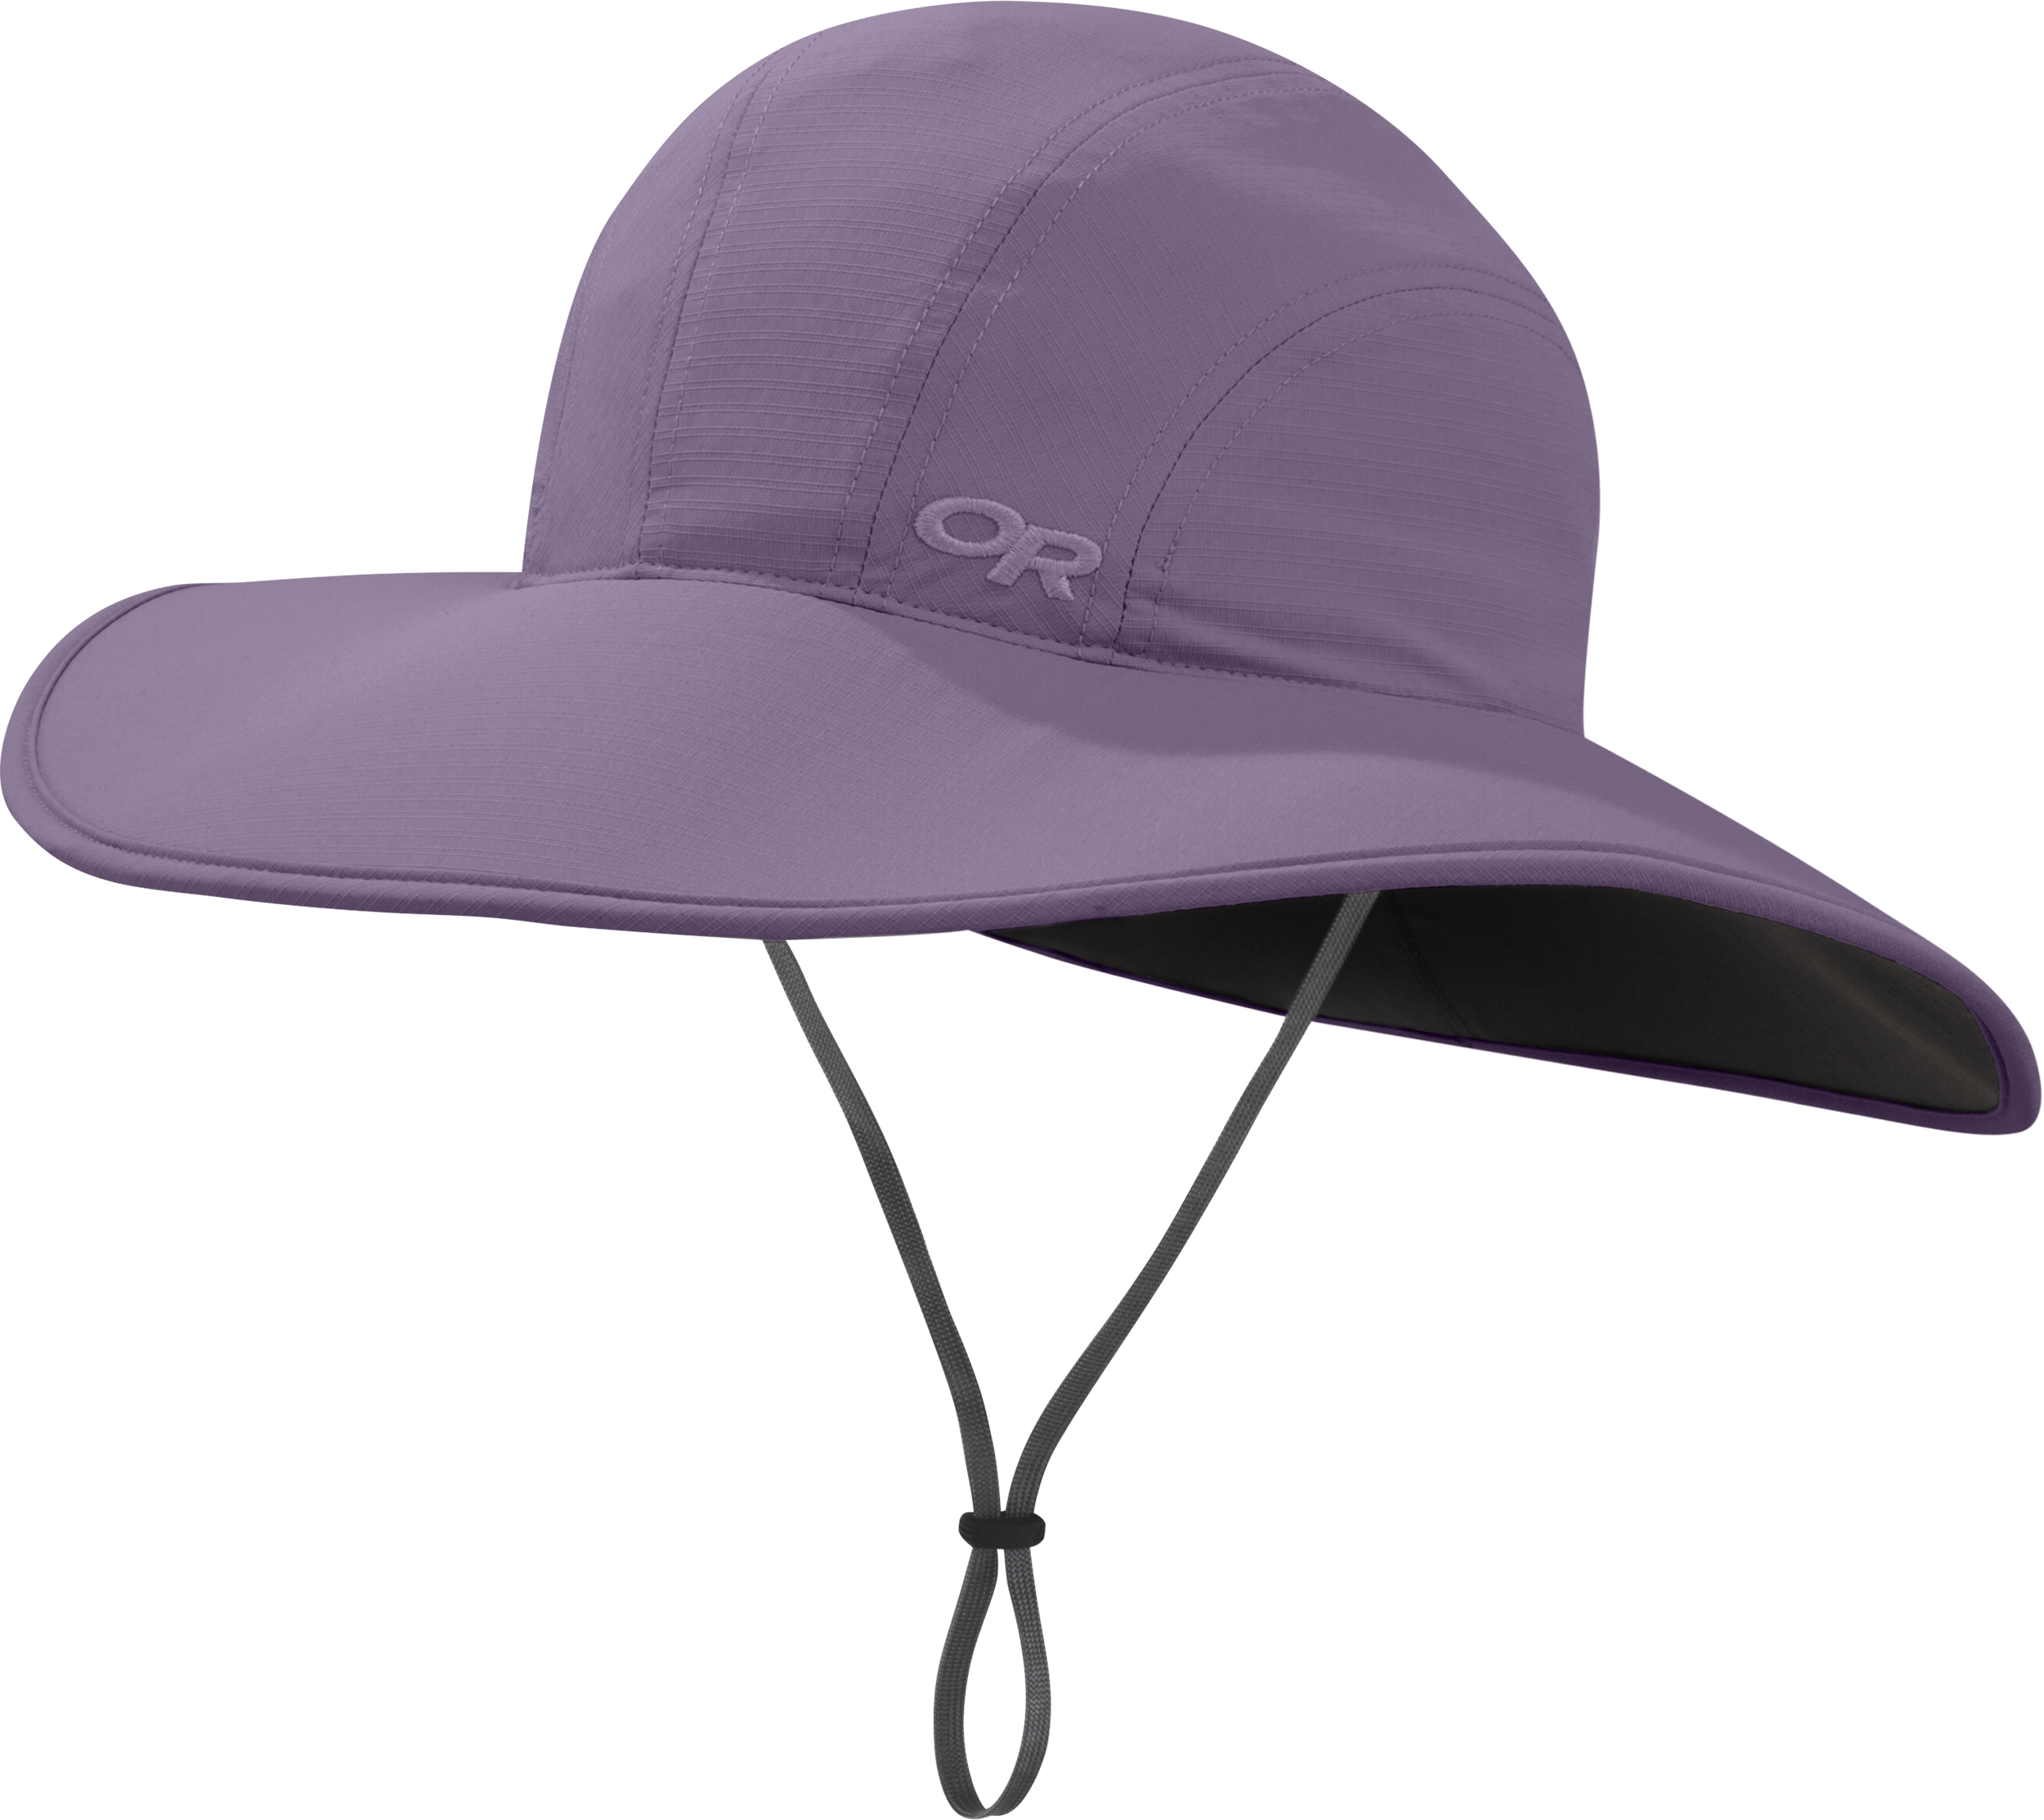 c0280256 Outdoor Research Oasis Sun Sombrero - Women's | MEC